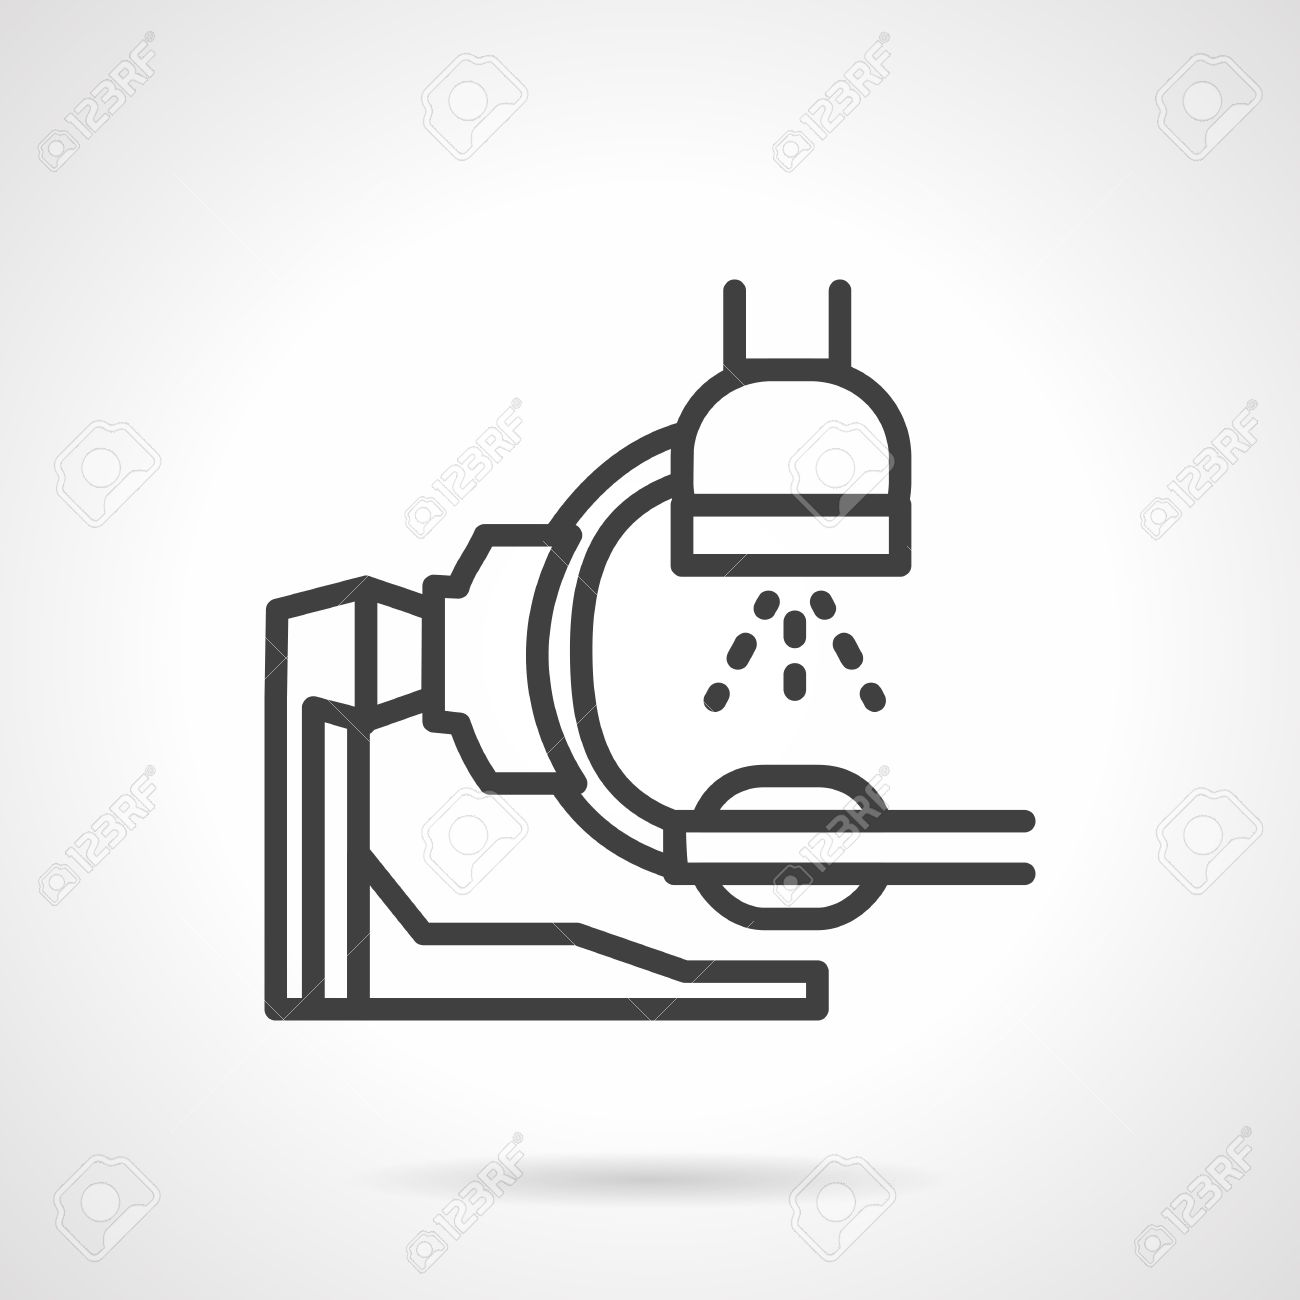 hight resolution of flat simple line style x ray machine icon equipment for x ray exam